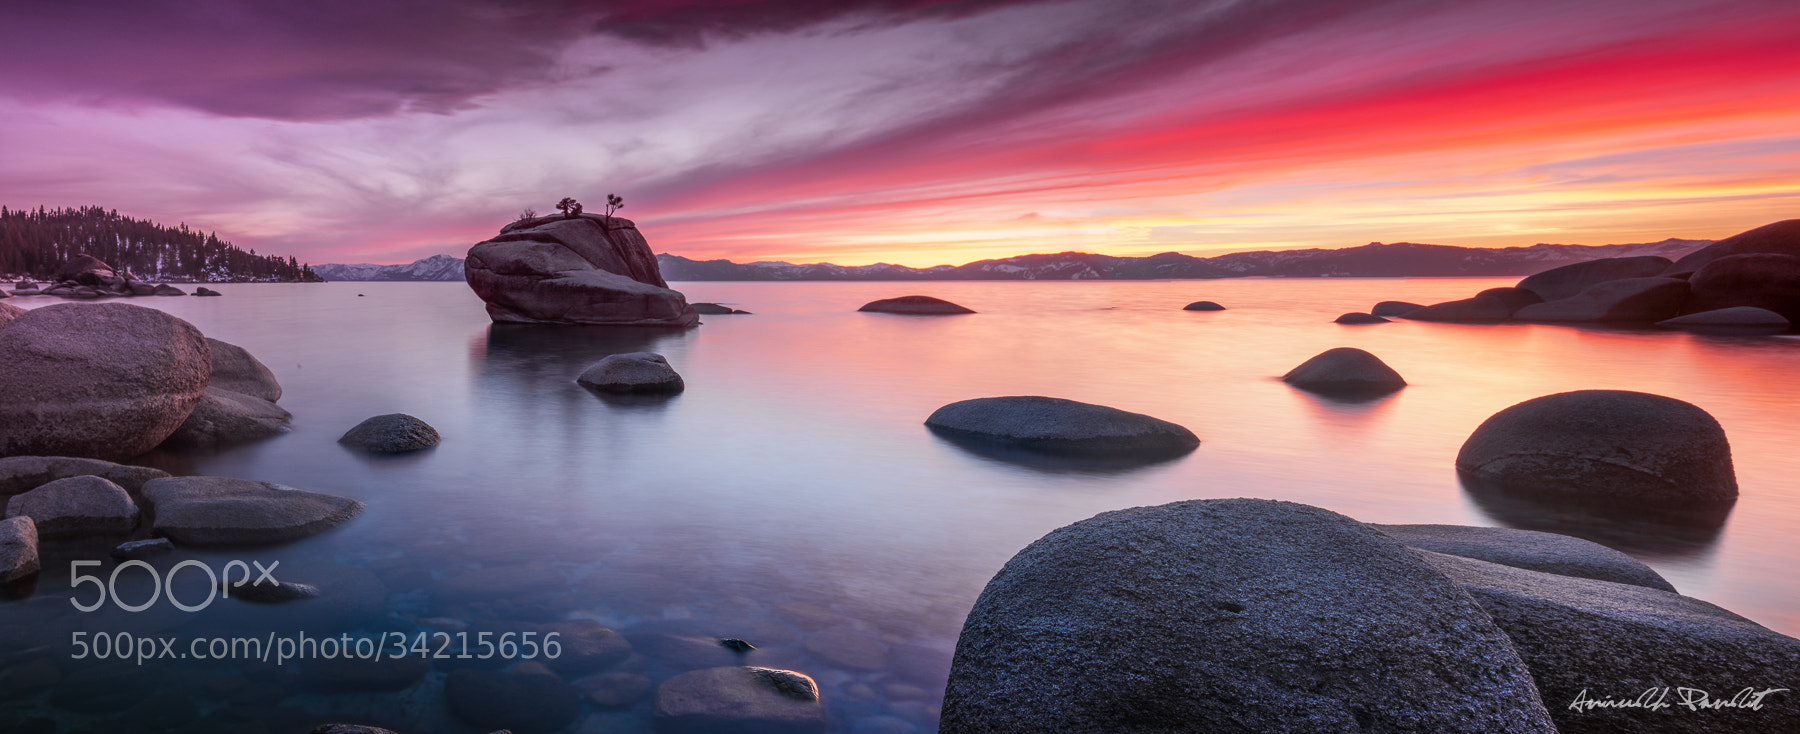 Photograph Lake Tahoe Sunset panorama by Ani Pandit on 500px